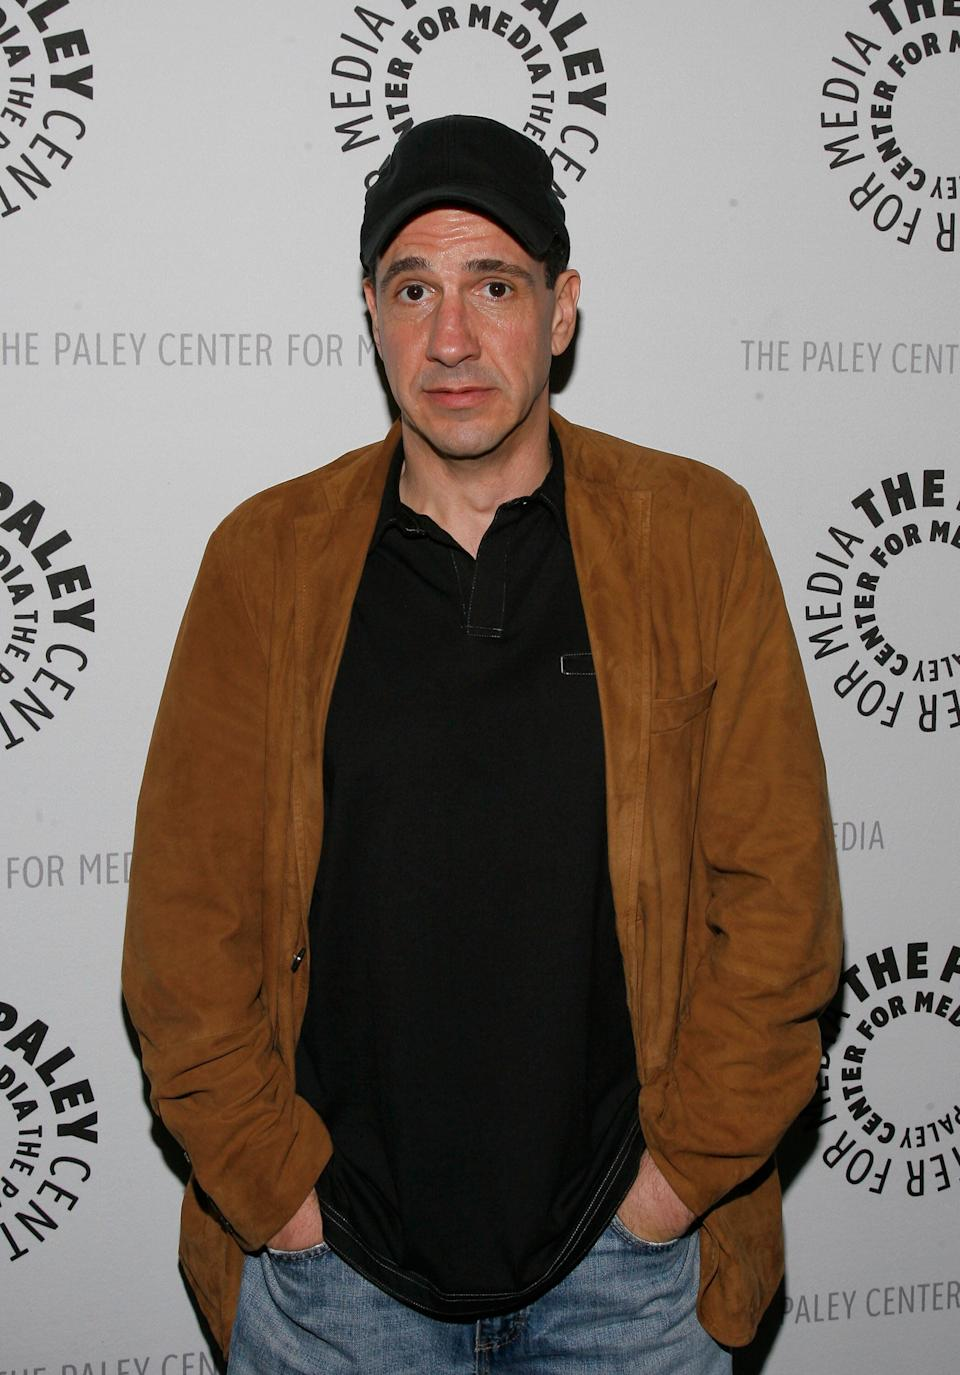 <strong>Sam Lloyd (1963 - 2020)<br /><br /></strong>The comedy actor, who appeared in Scrubs and Cougar Town, was diagnosed with an inoperable brain tumour in January 2019, and died at the age of 56 the following April.